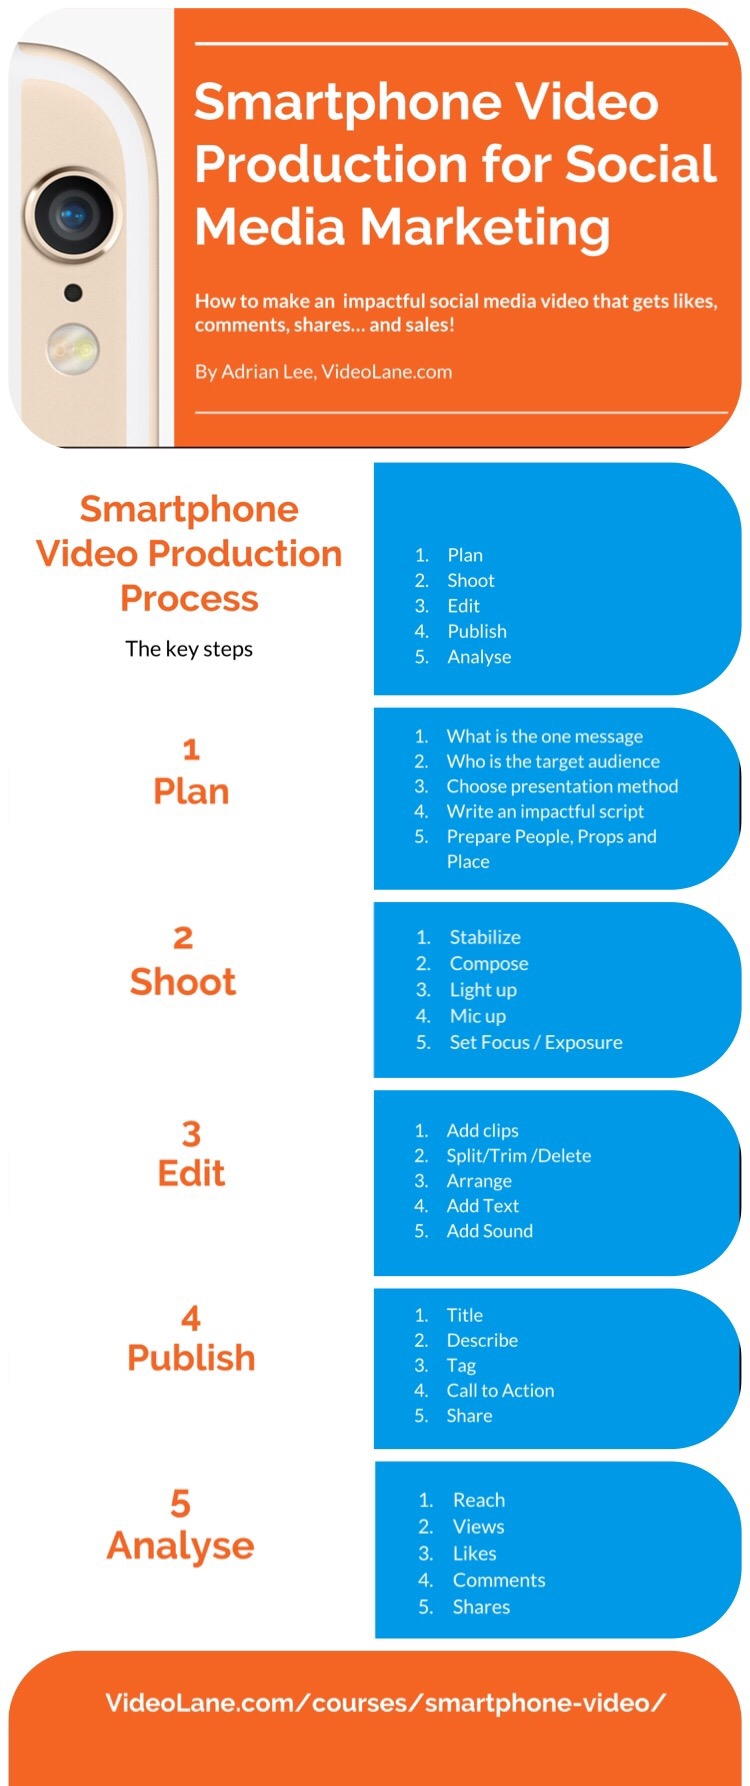 Smartphone Video Production Process